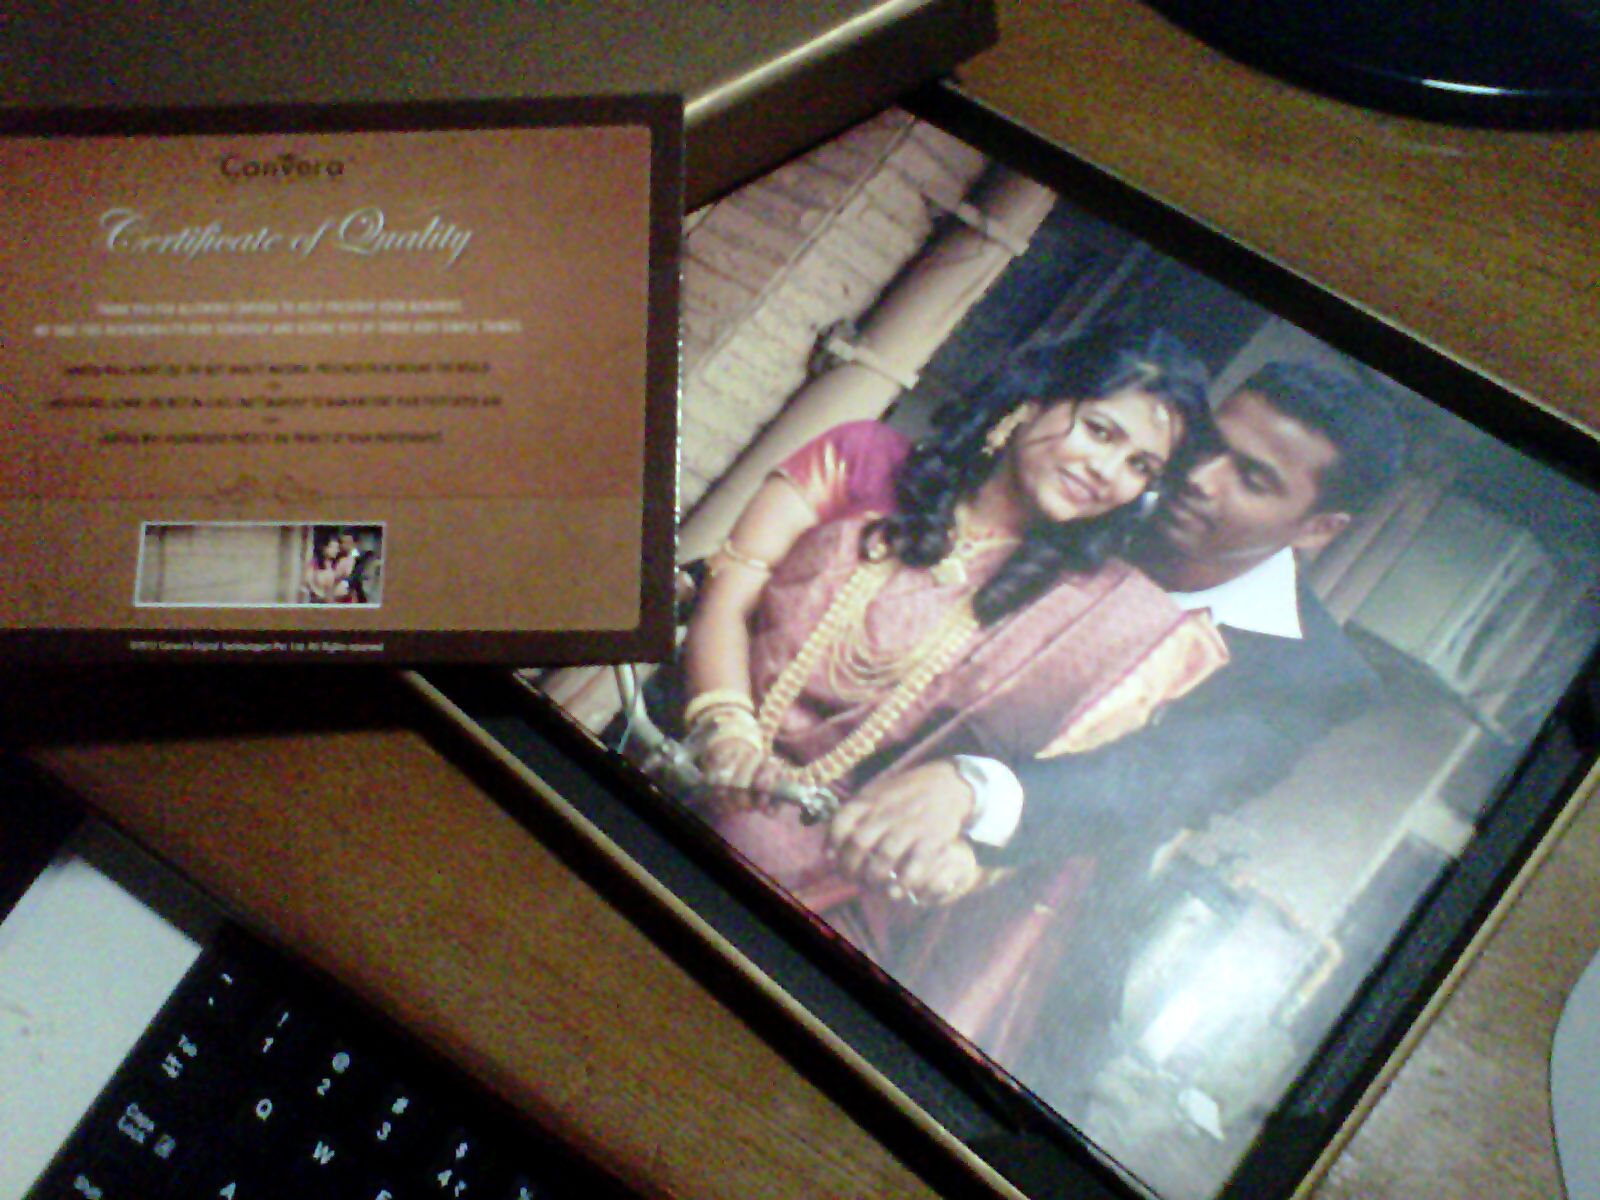 A Coffee table book / Wedding photo Book printed by Canvera